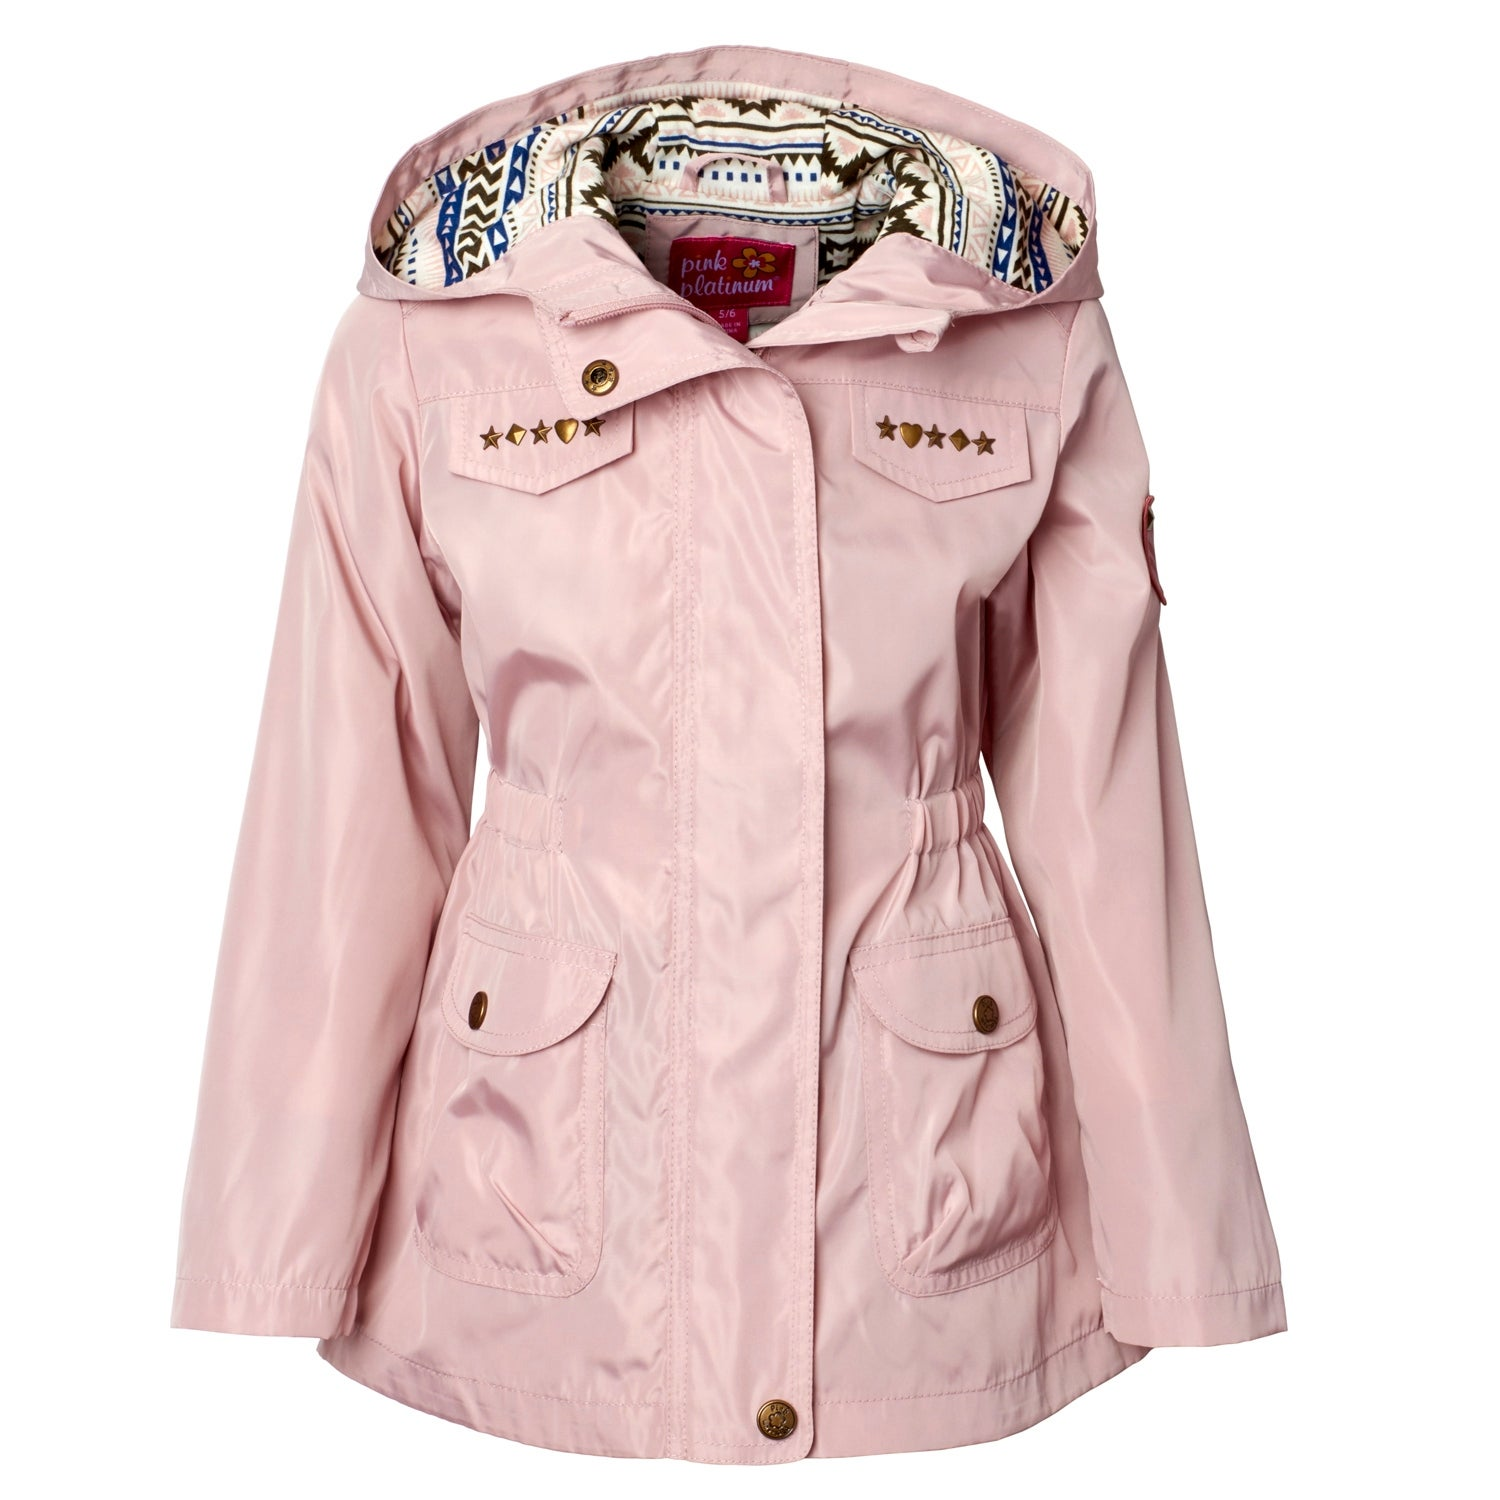 on clothing silver with girls starts puffer winter platinum overstock shipping little shoes print jacket free over product orders pink coat